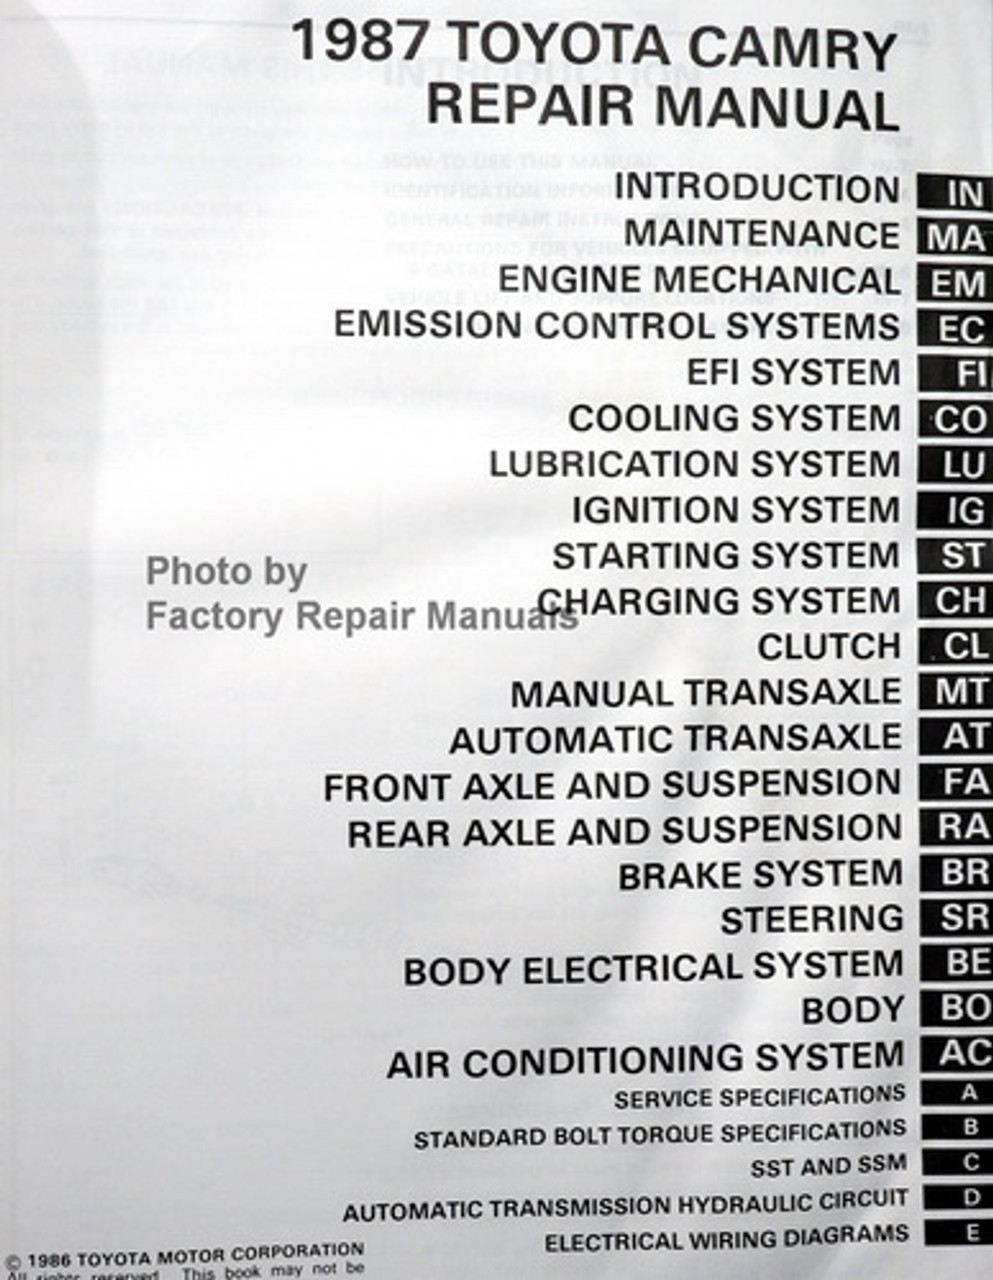 1987 toyota camry owners manual pdf